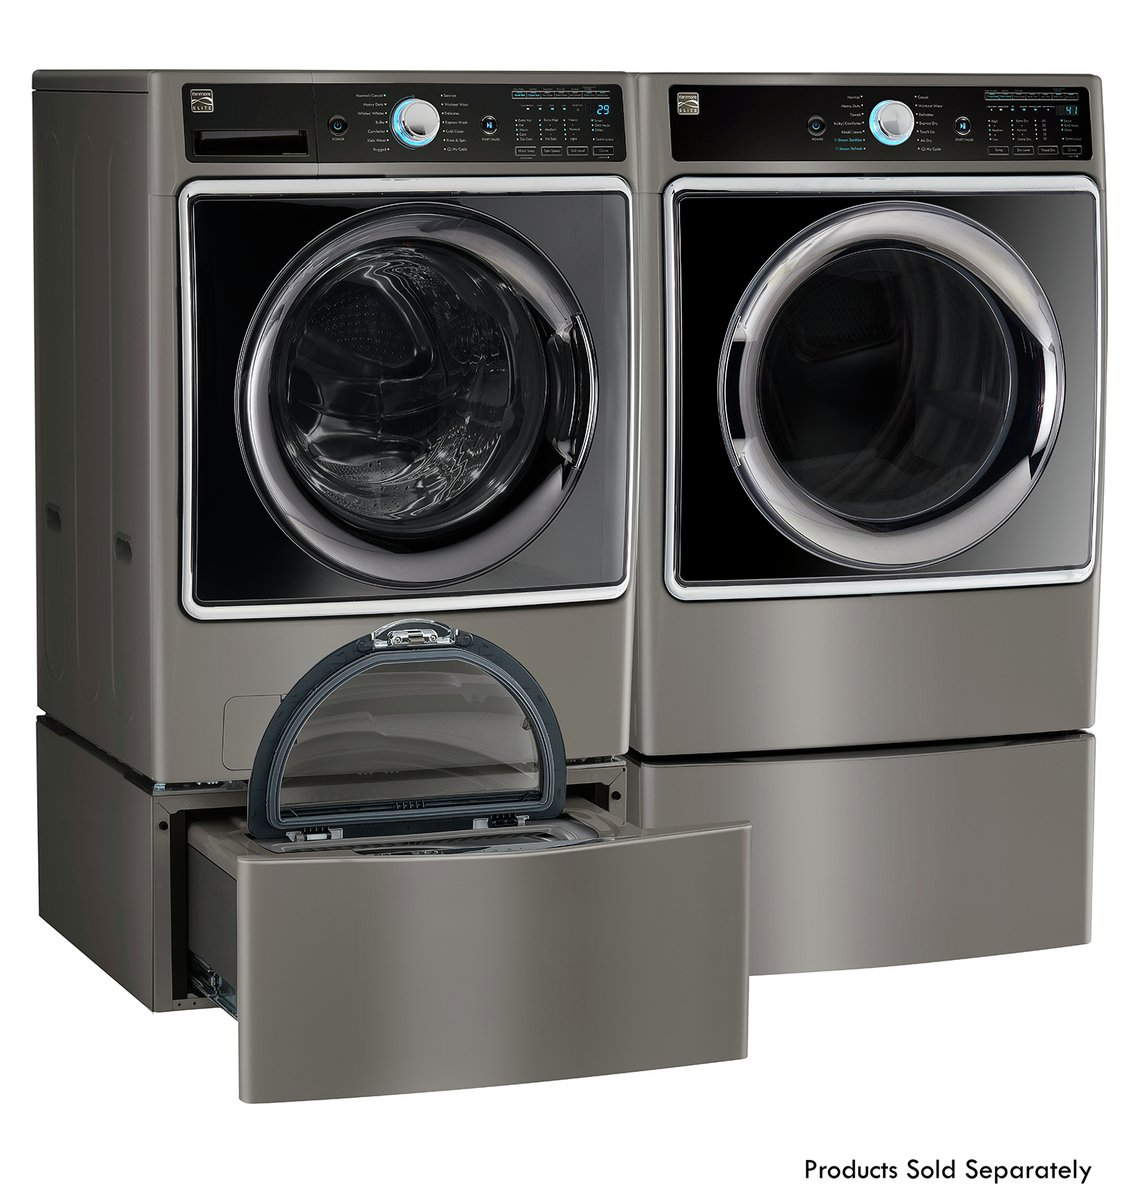 Electric Dryer with Wrinkle Guard in White -Works with Alexa includes delivery and hookup Kenmore 62332 7.0 cu ft